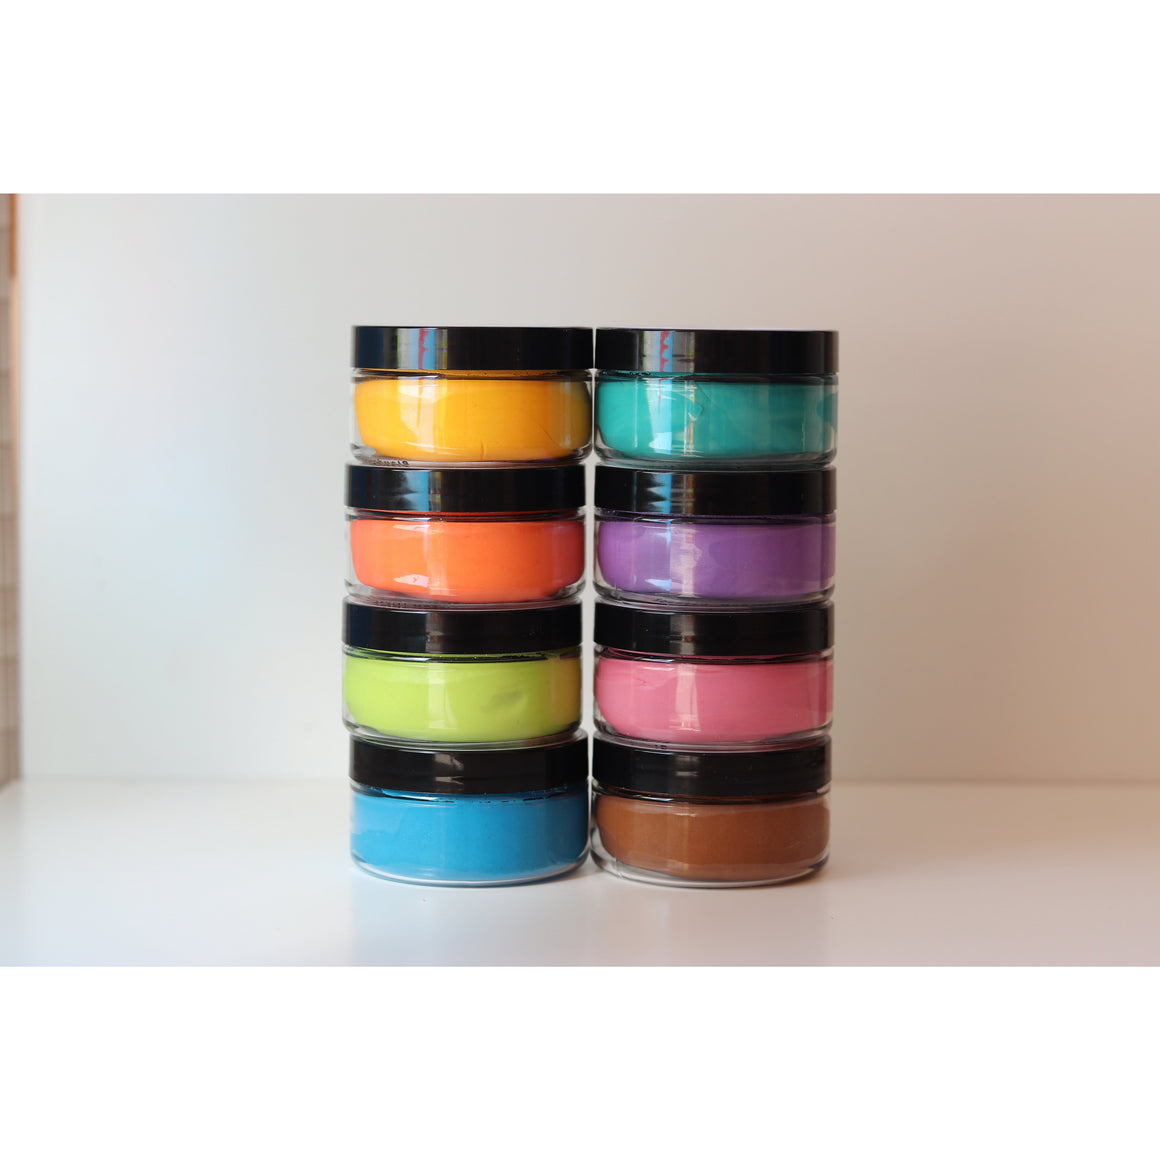 Classic Collection Mini Bundle - 45 jars at $7.50ea